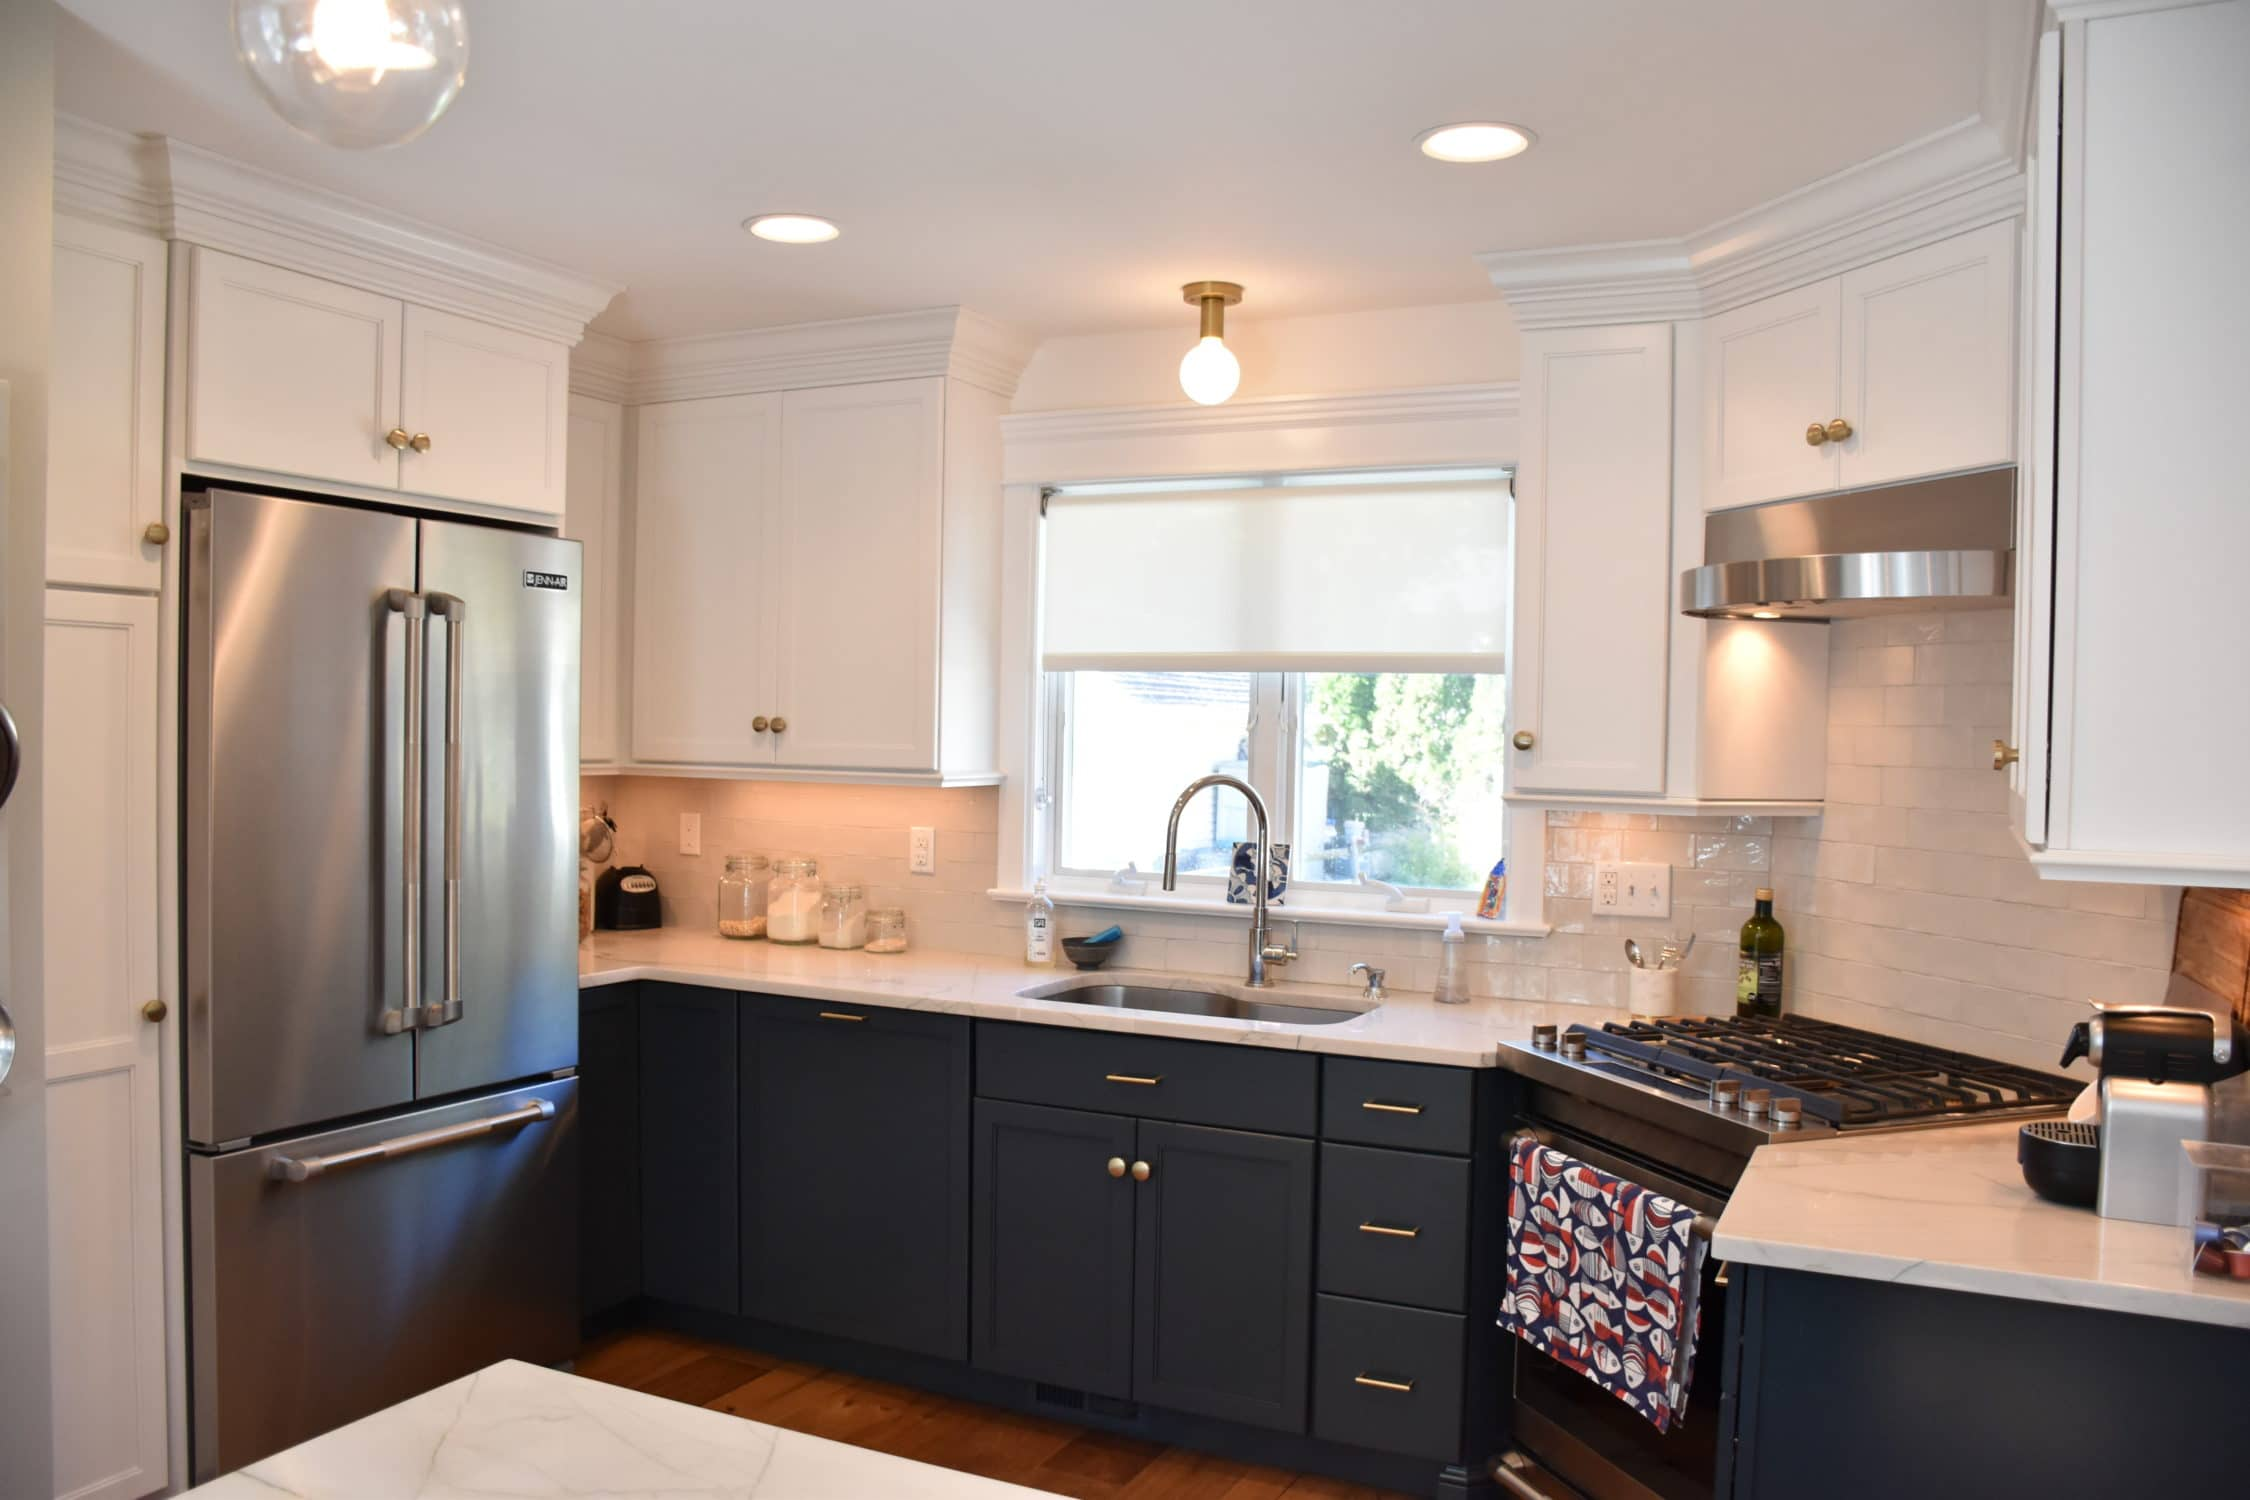 Top 10 Creative Ideas for NJ Kitchen Remodeling in 2019